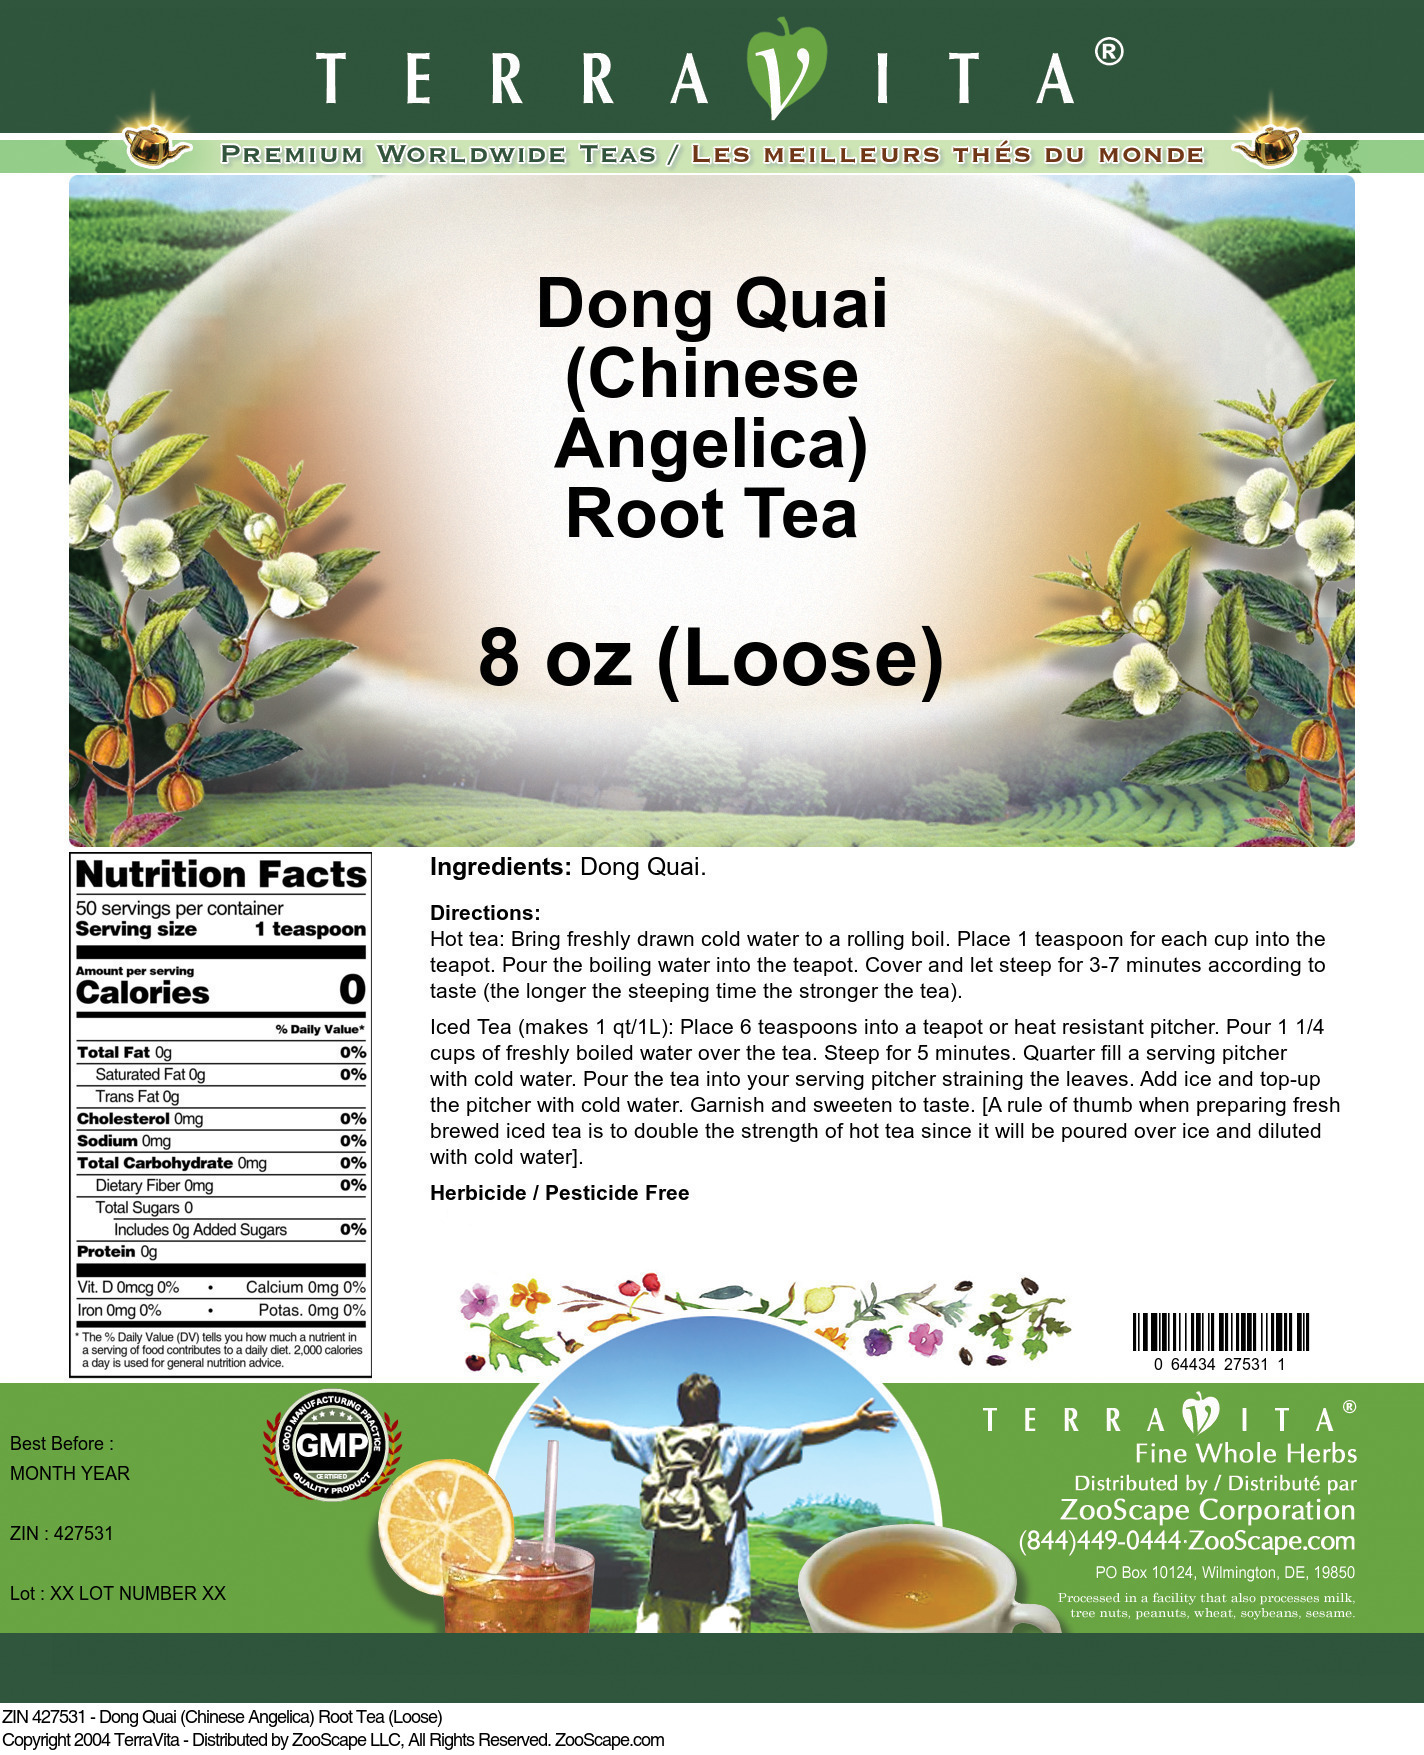 Dong Quai (Chinese Angelica) Root Tea (Loose) - Label